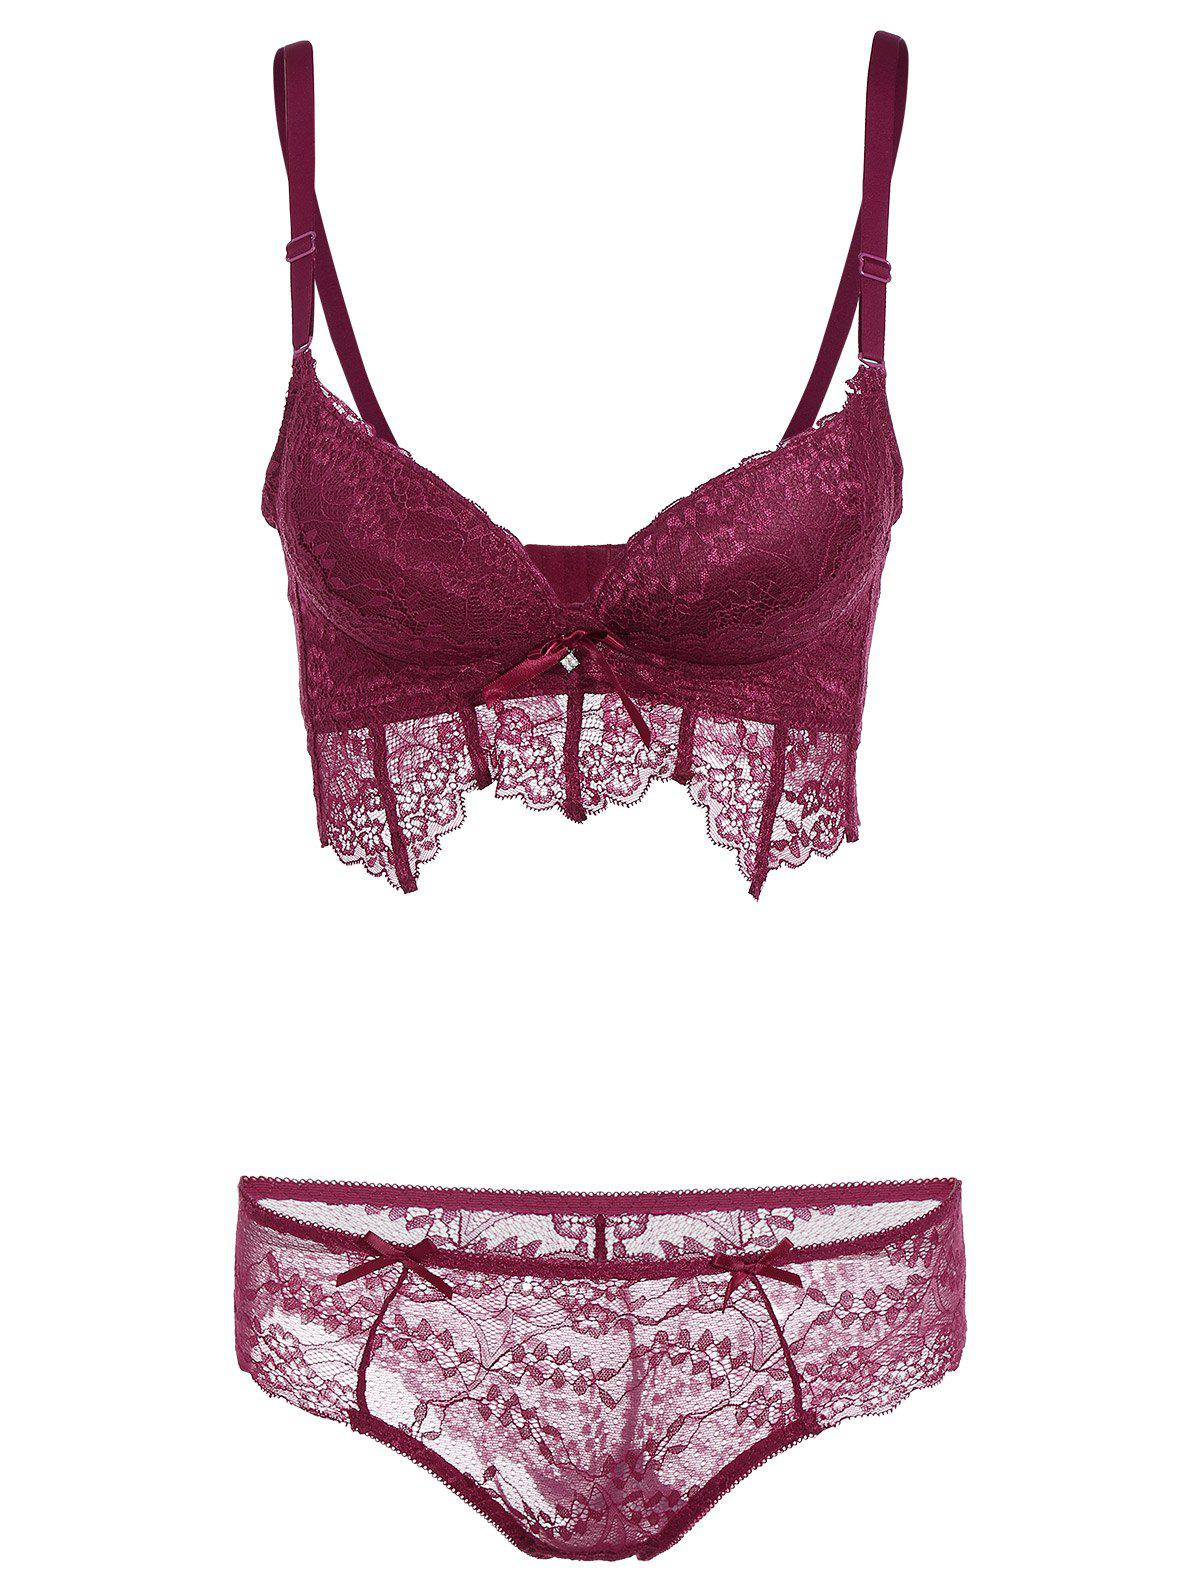 Underwire Lace Push Up Bra Set